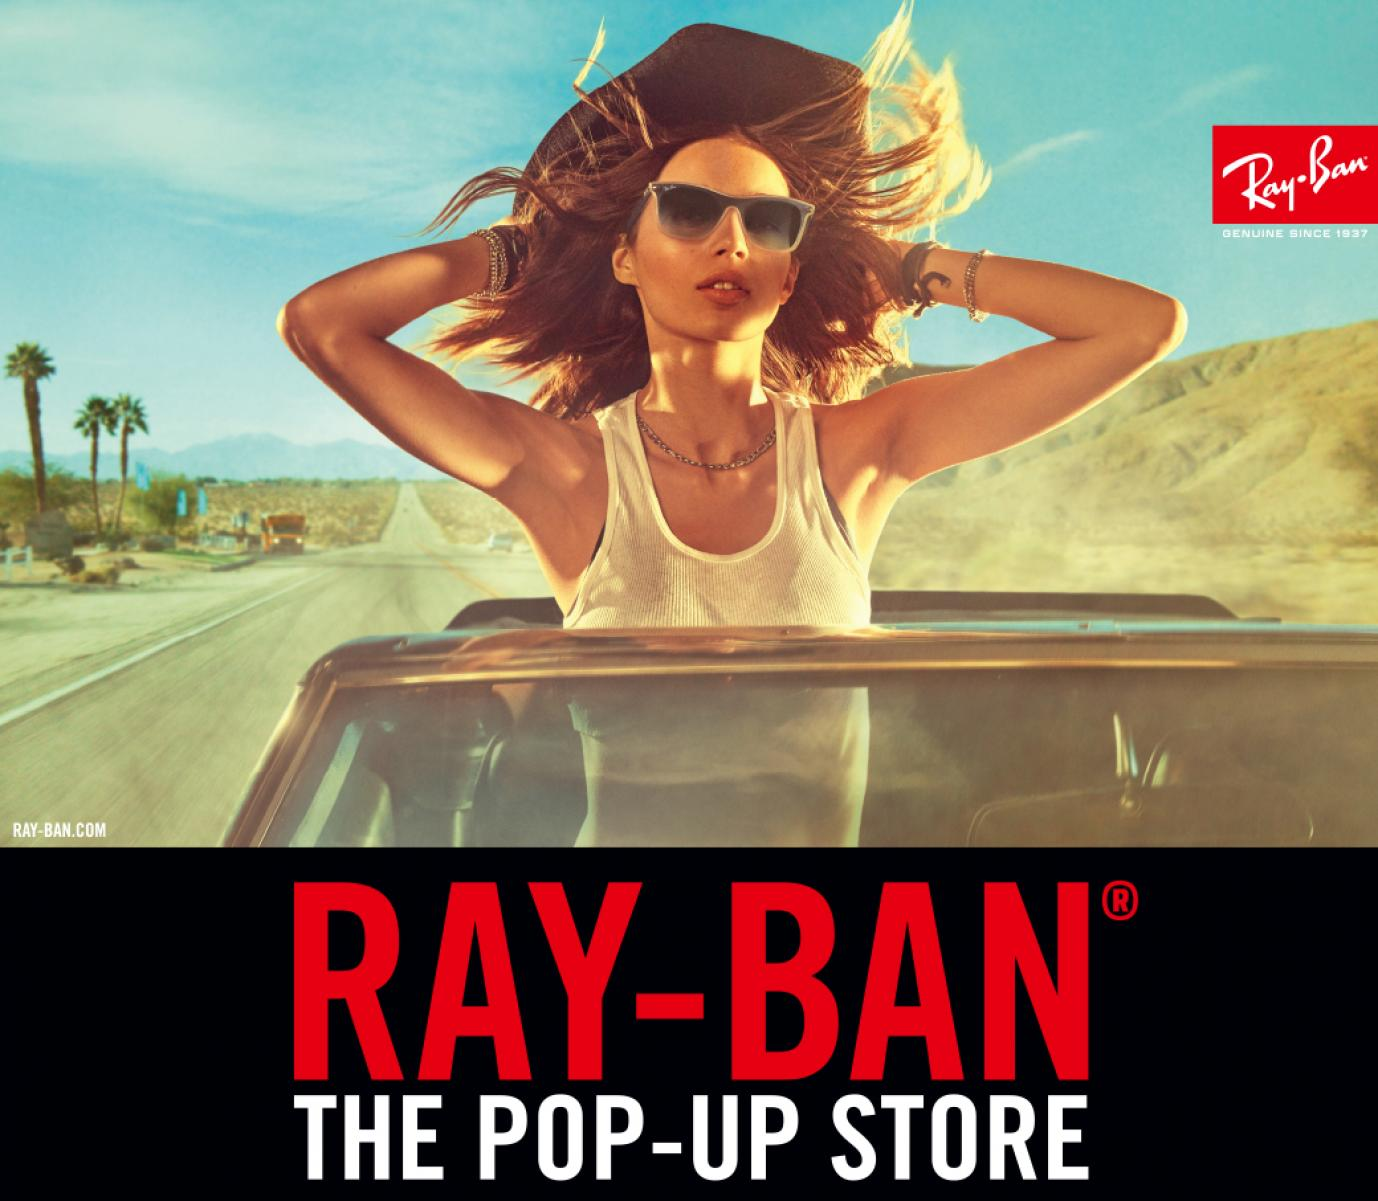 "<川崎ラゾーナ店>Ray-Ban""POP-UP STORE"